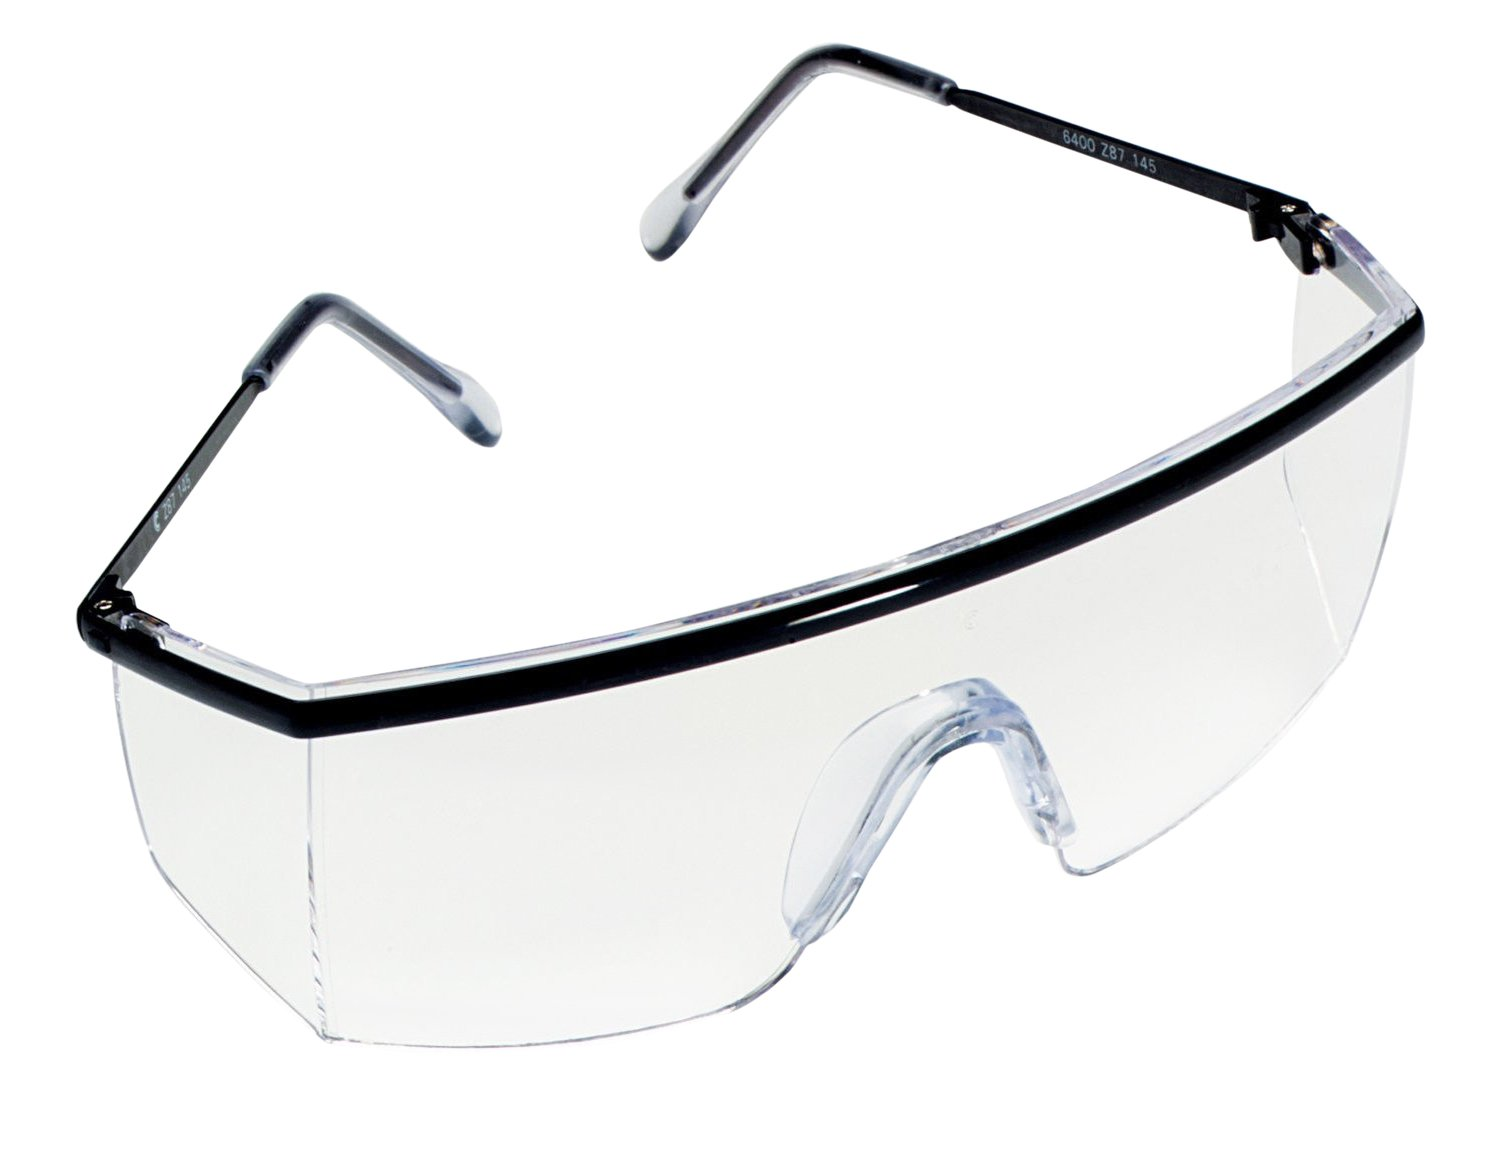 f5b0e93e0d0 Safety Glasses  Buy Safety Glasses Online at Best Prices in India ...